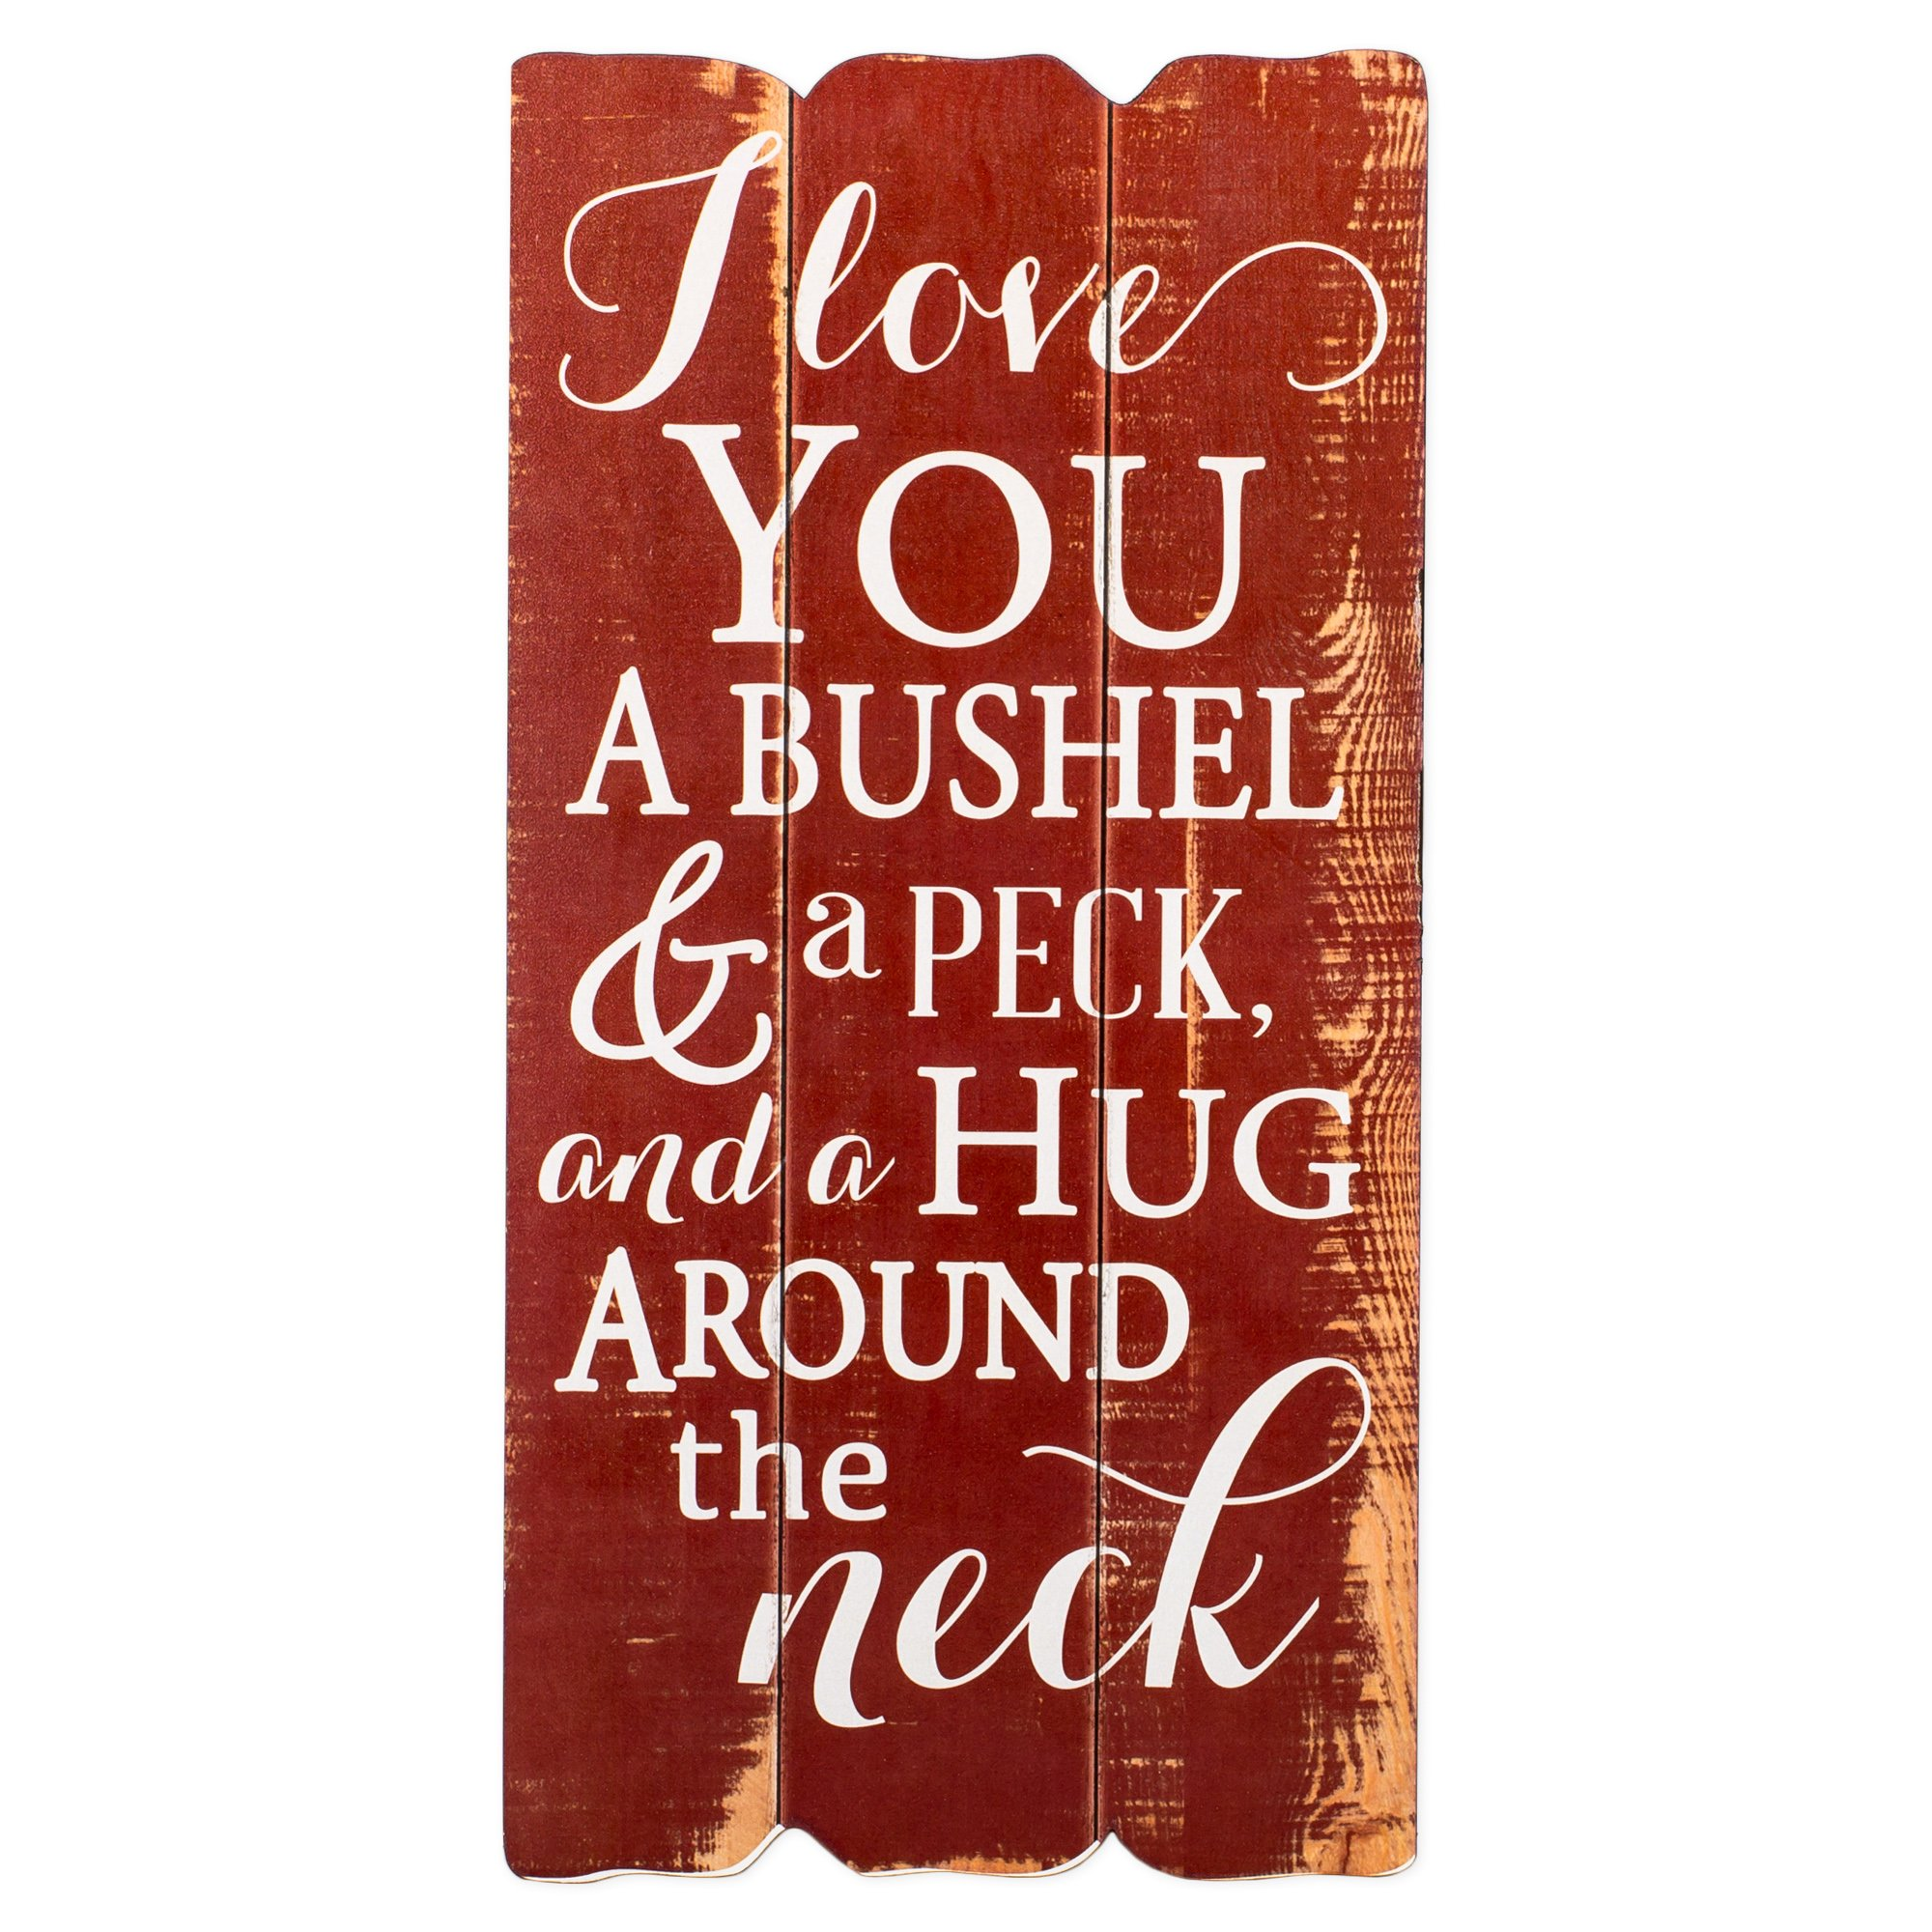 I Love You a Bushel and a Peck Distressed Red Fence Post Design 12 x 6 Wall Art Sign Plaque